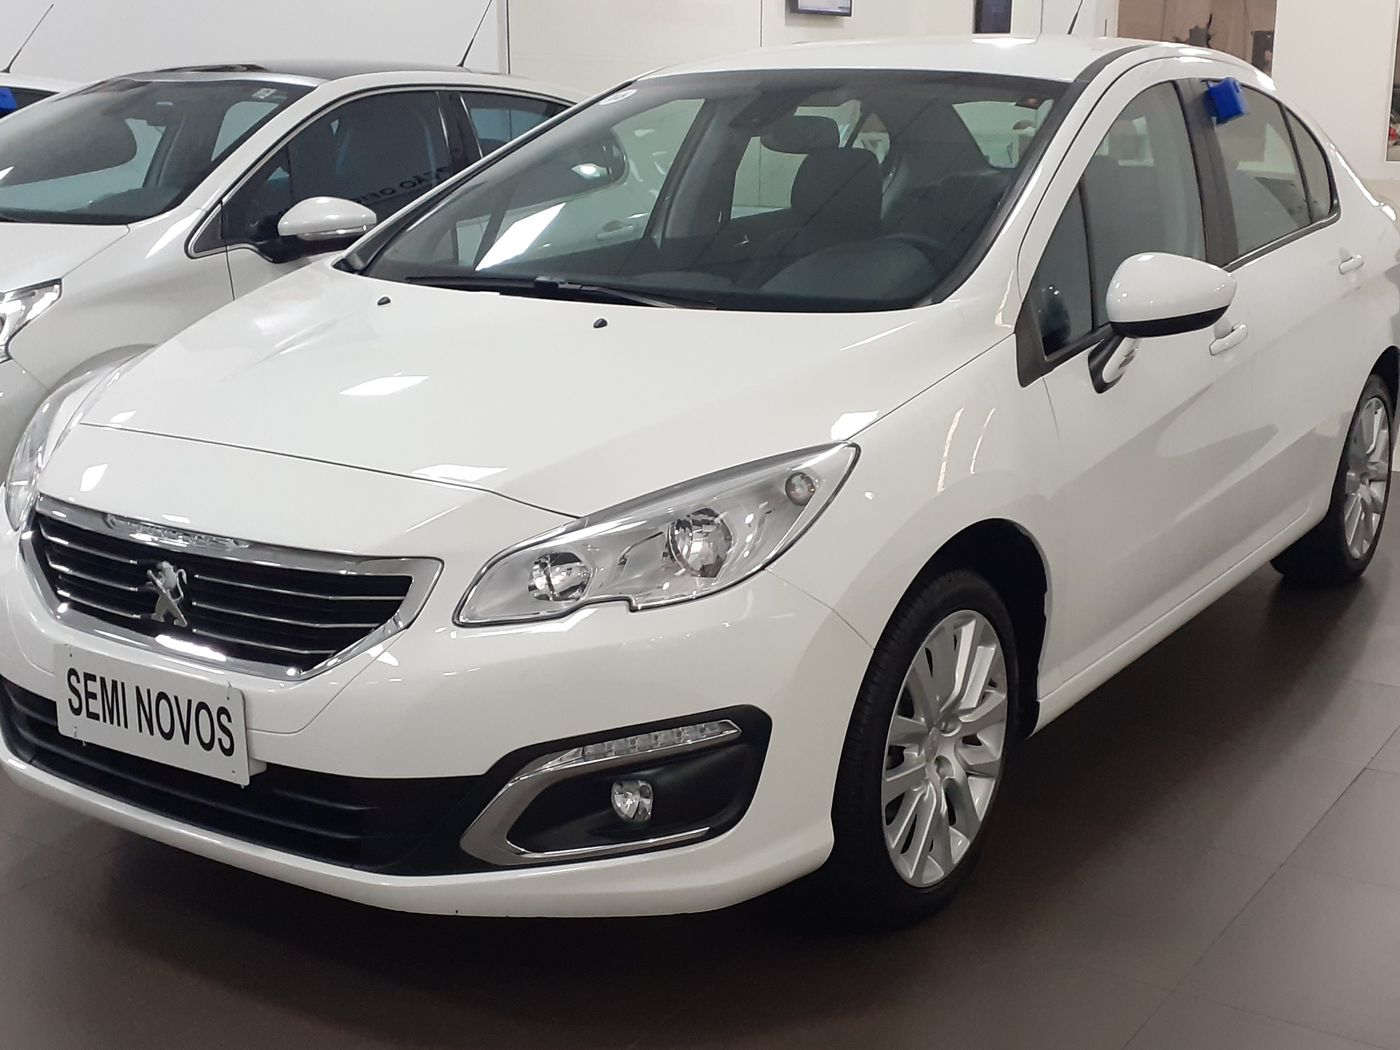 Peugeot 408 Sedan Allure 2.0 Flex 16V 4p Aut.